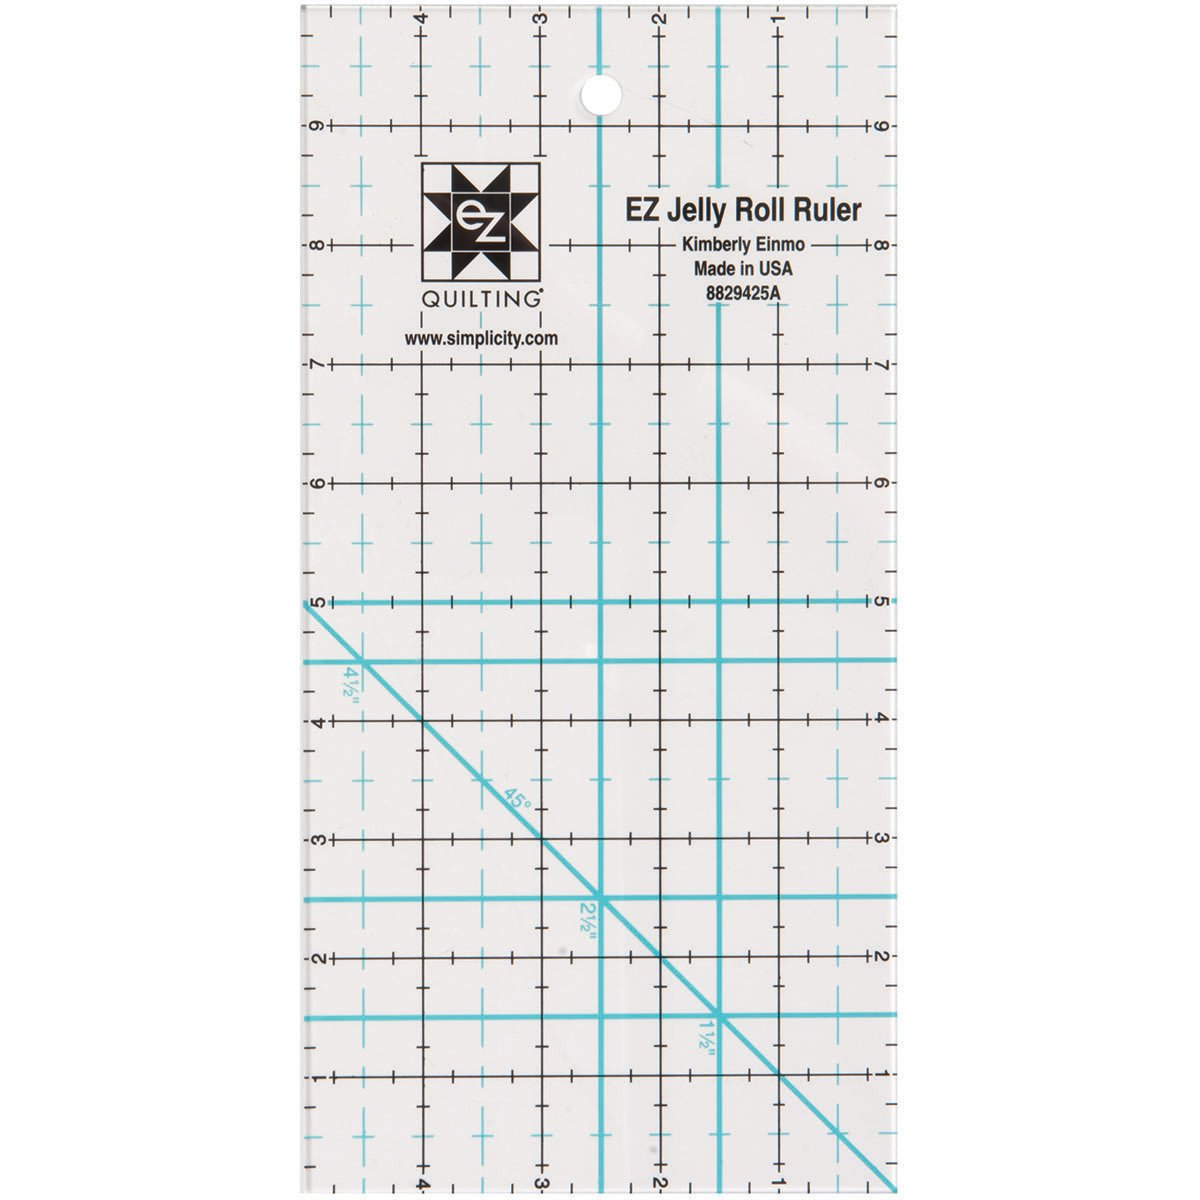 Simpli-EZ 8829425 5-inch by 10-inch Jelly Roll Ruler Quilting Tool Simplicity 8829425A